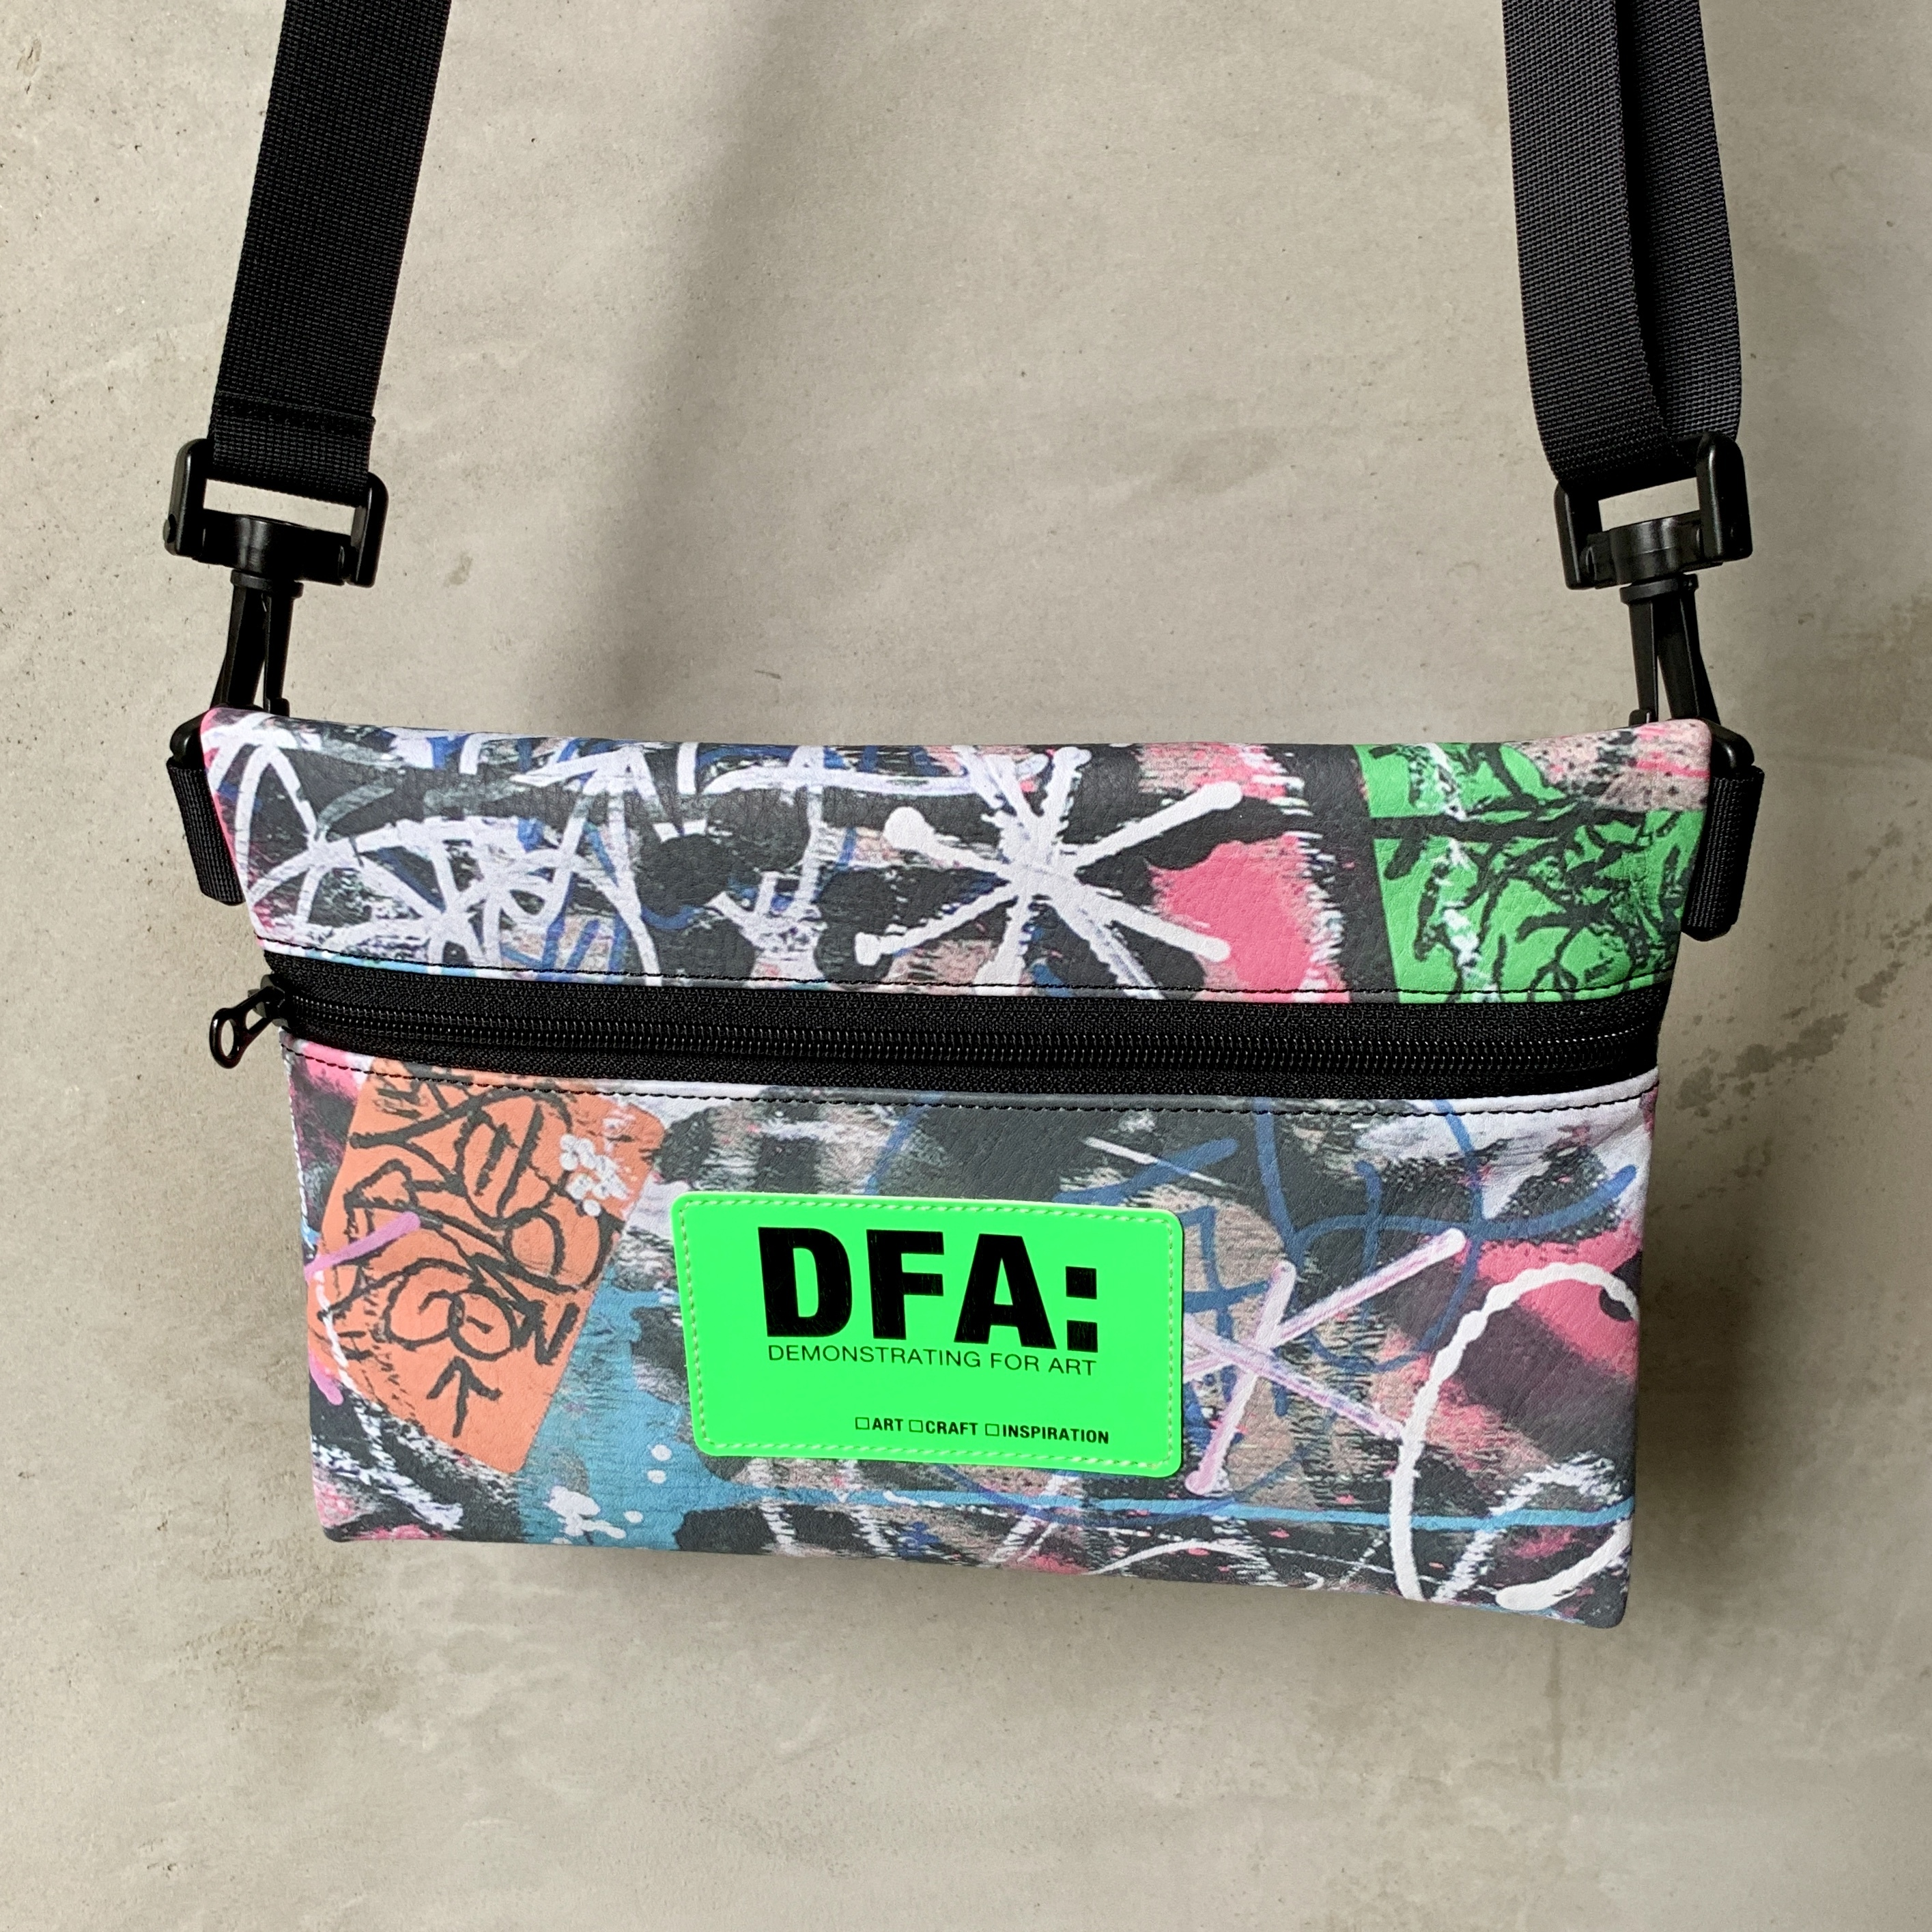 DFA: DEMONSTRATING FOR ART NEW PRODUCT/ EXTRAORDINARY SERIES ショルダーバッグ